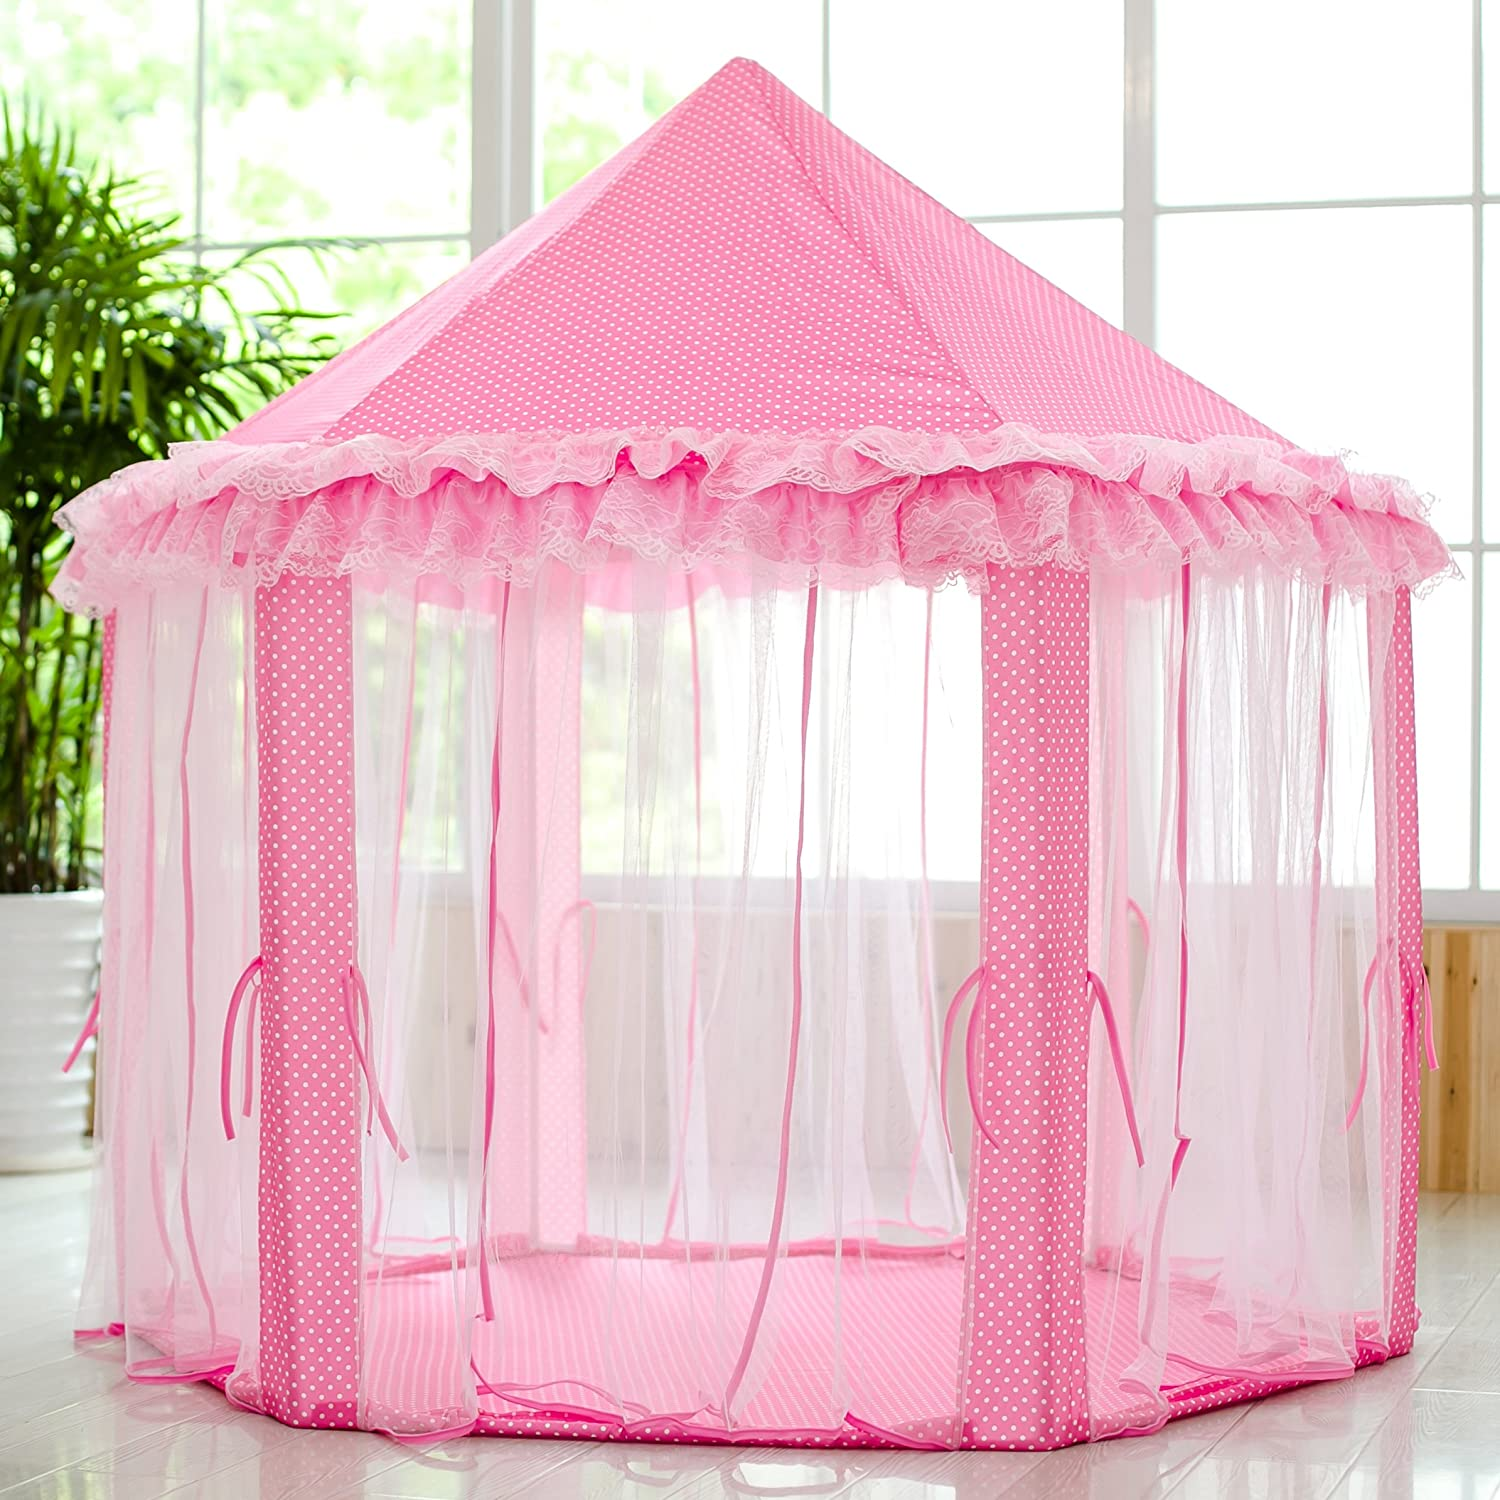 Amazon.com: SkyeyArc Princess Playhouse With Lace, Pink Tent ...